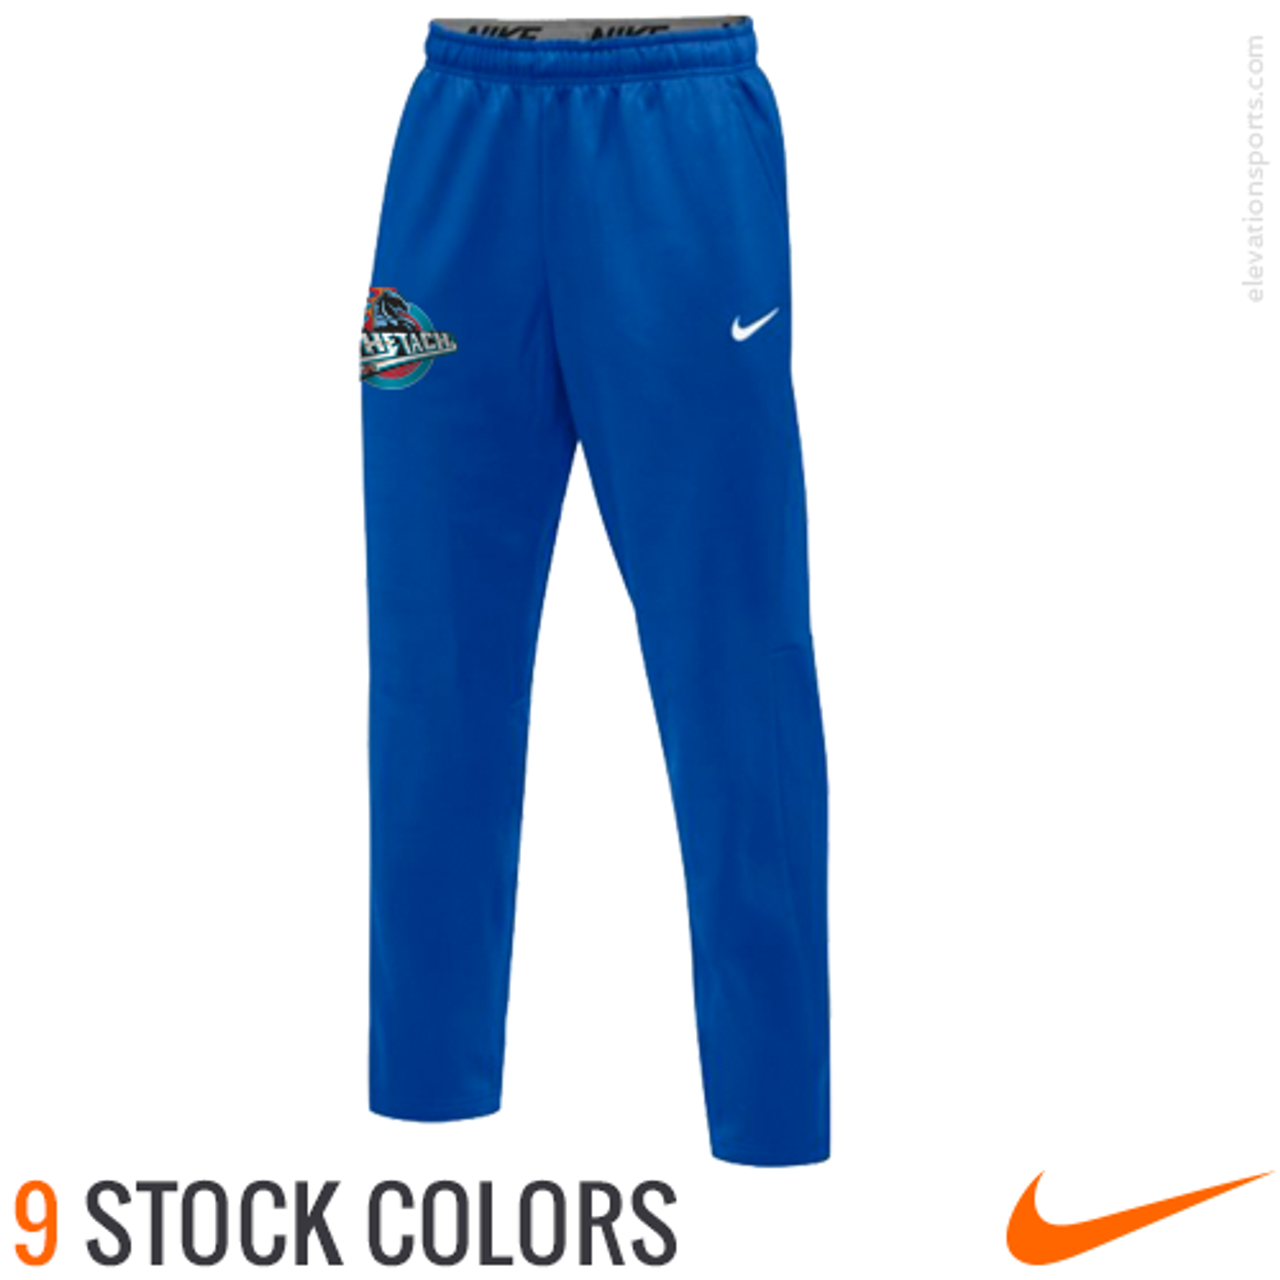 Nike Therma Custom Sweat Suits | Elevation Sports